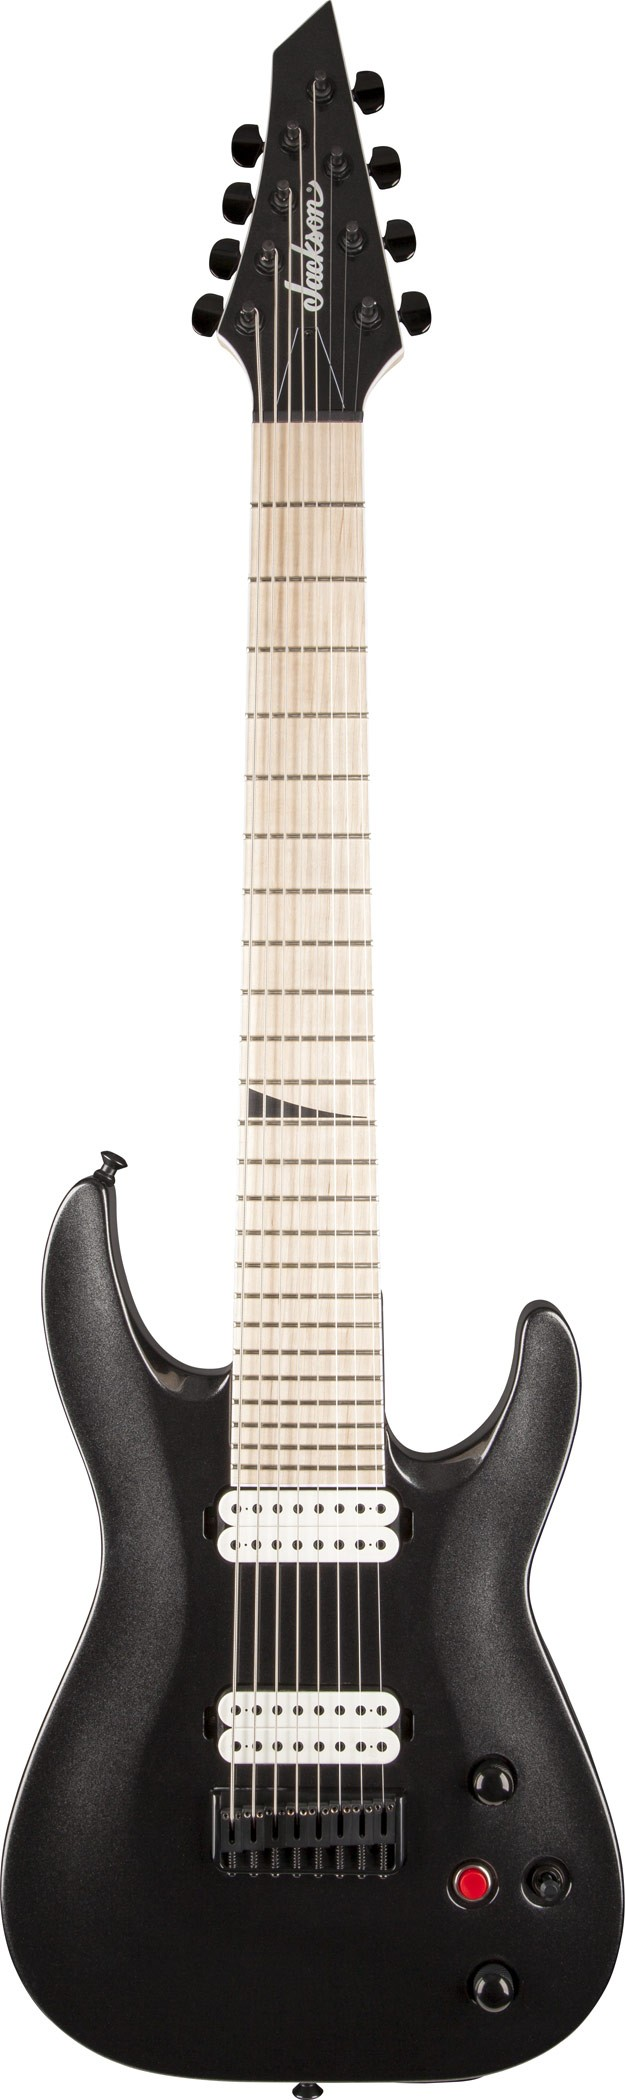 DKA8 Pro Series Dinky 8-String Hardtail